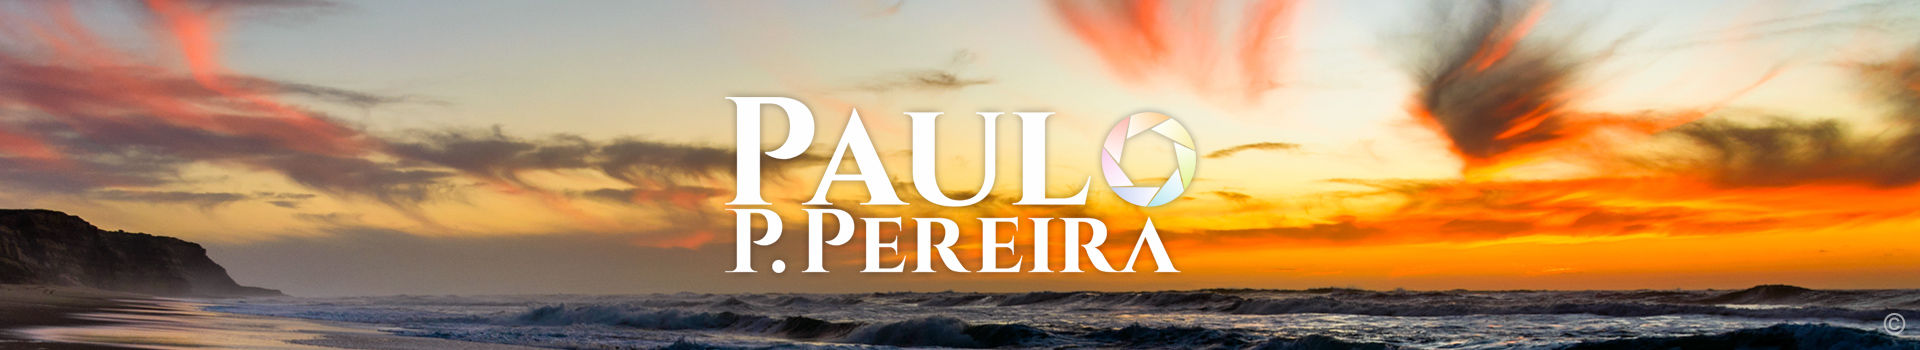 Category: Paulo P. Pereira